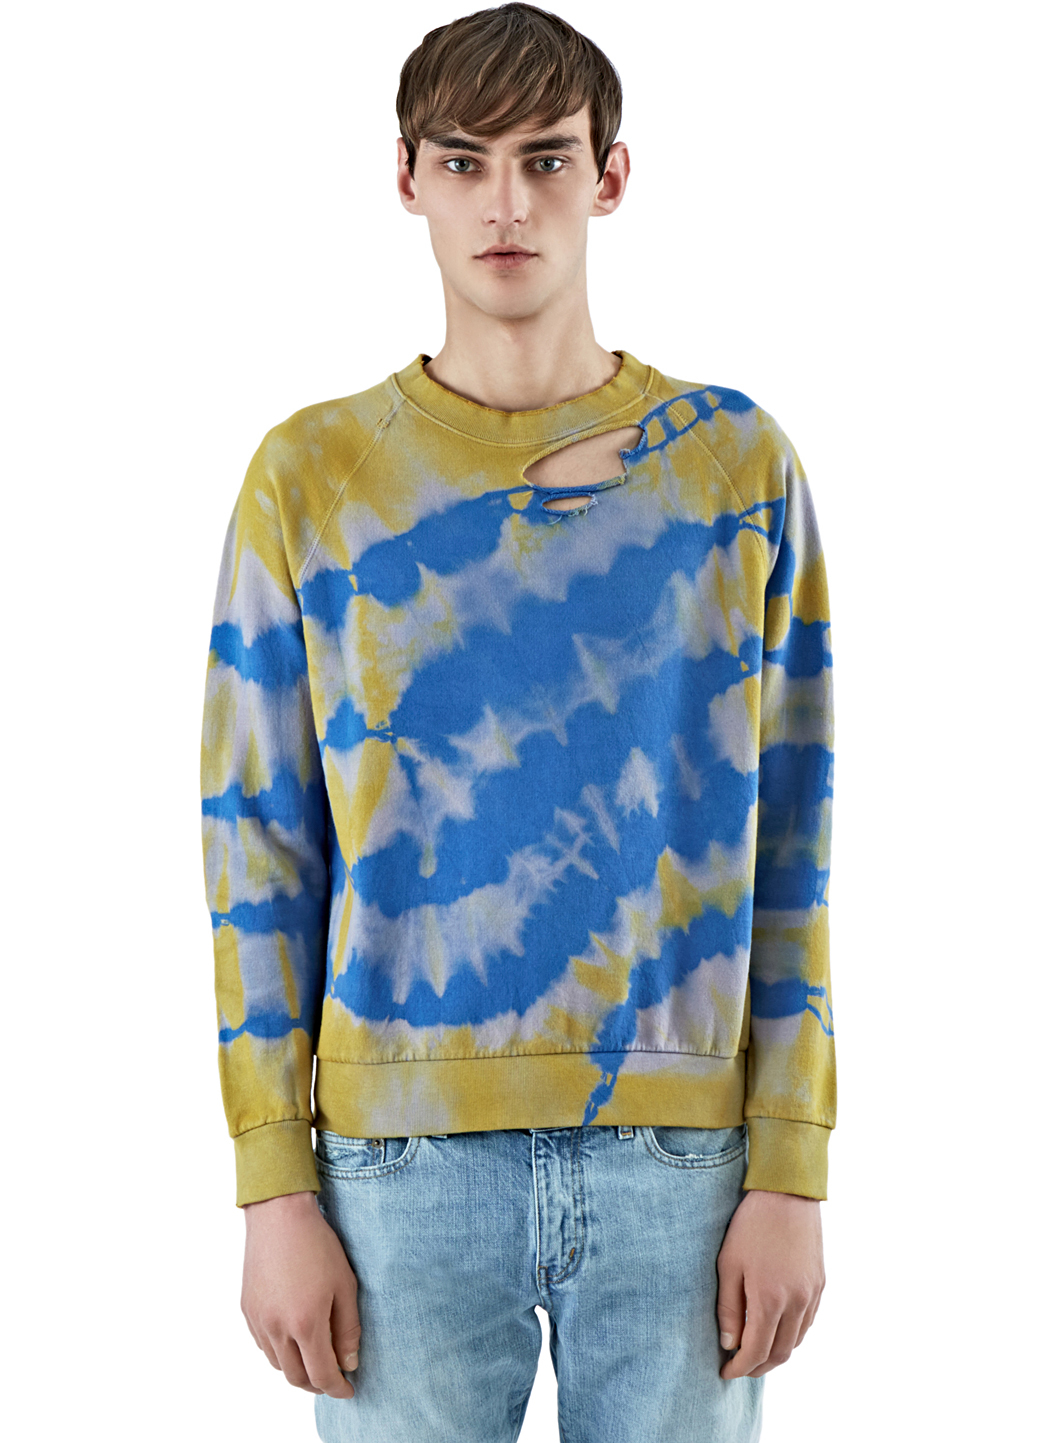 Saint laurent Men's Tie Dye Sweater In Yellow And Blue in Blue for ...